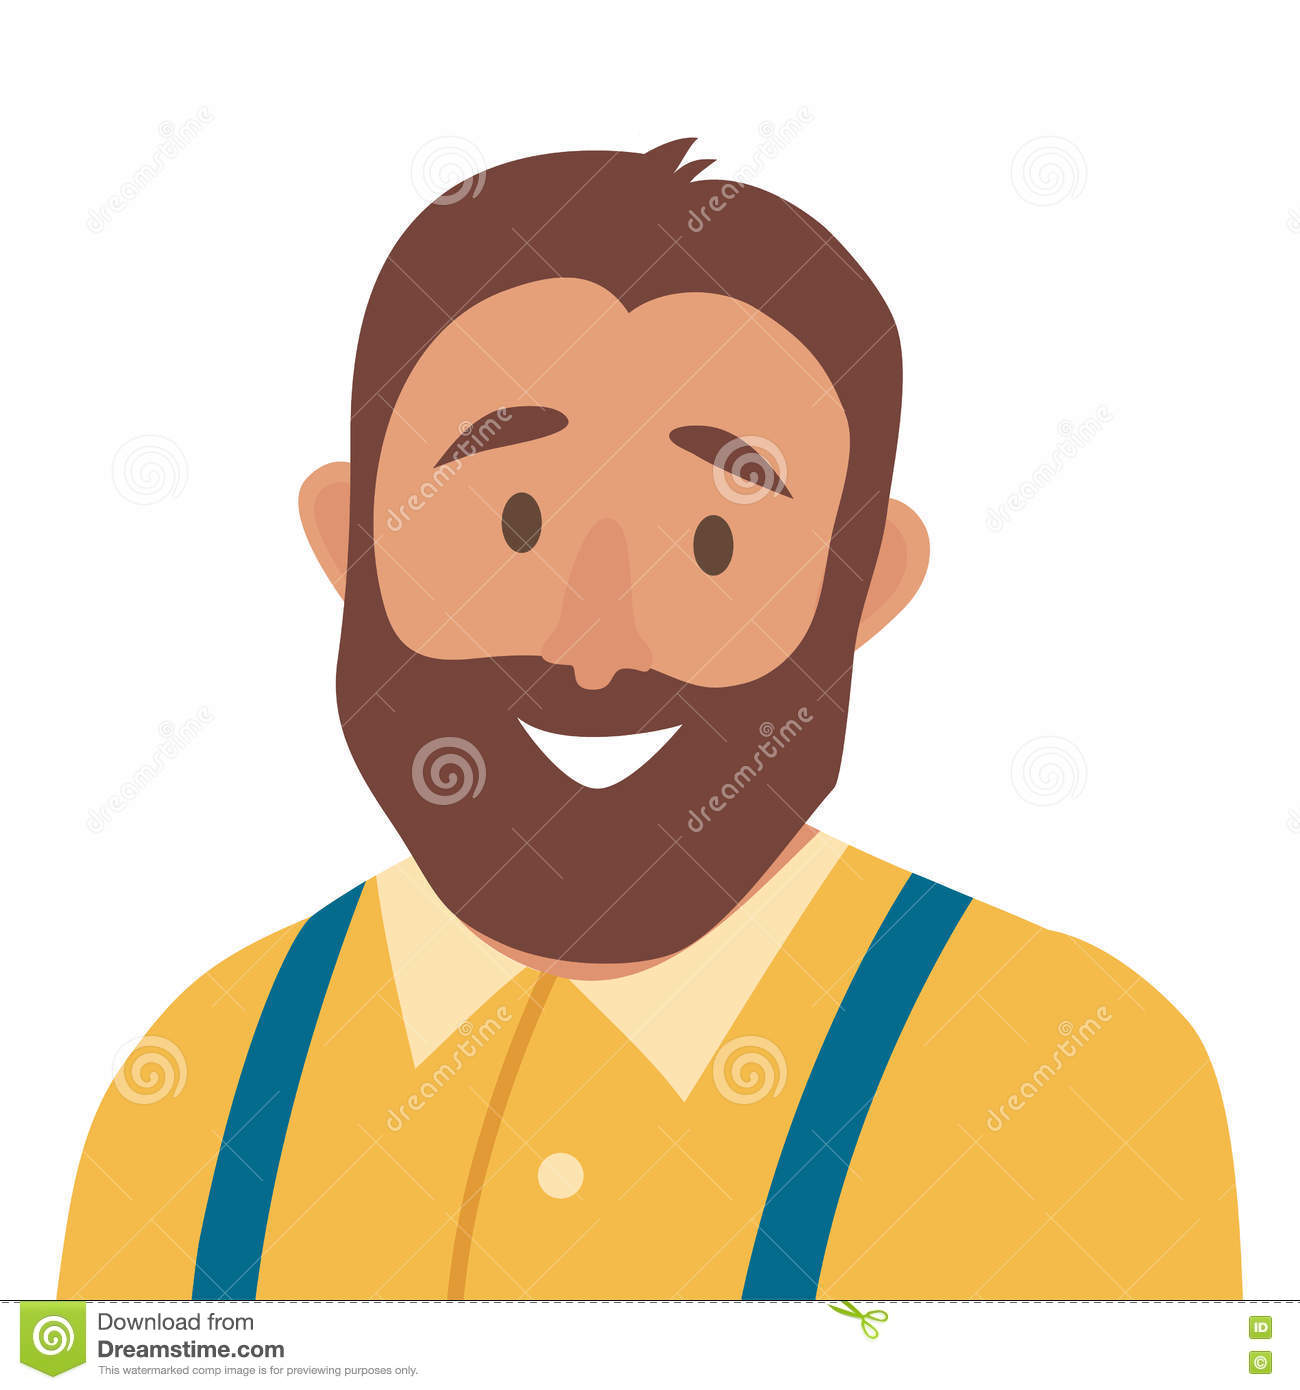 flat-cartoon-happy-man-vector-icon-fat-man-icon-illustration-hipster-character-face-face-people-icons-72080918.jpg